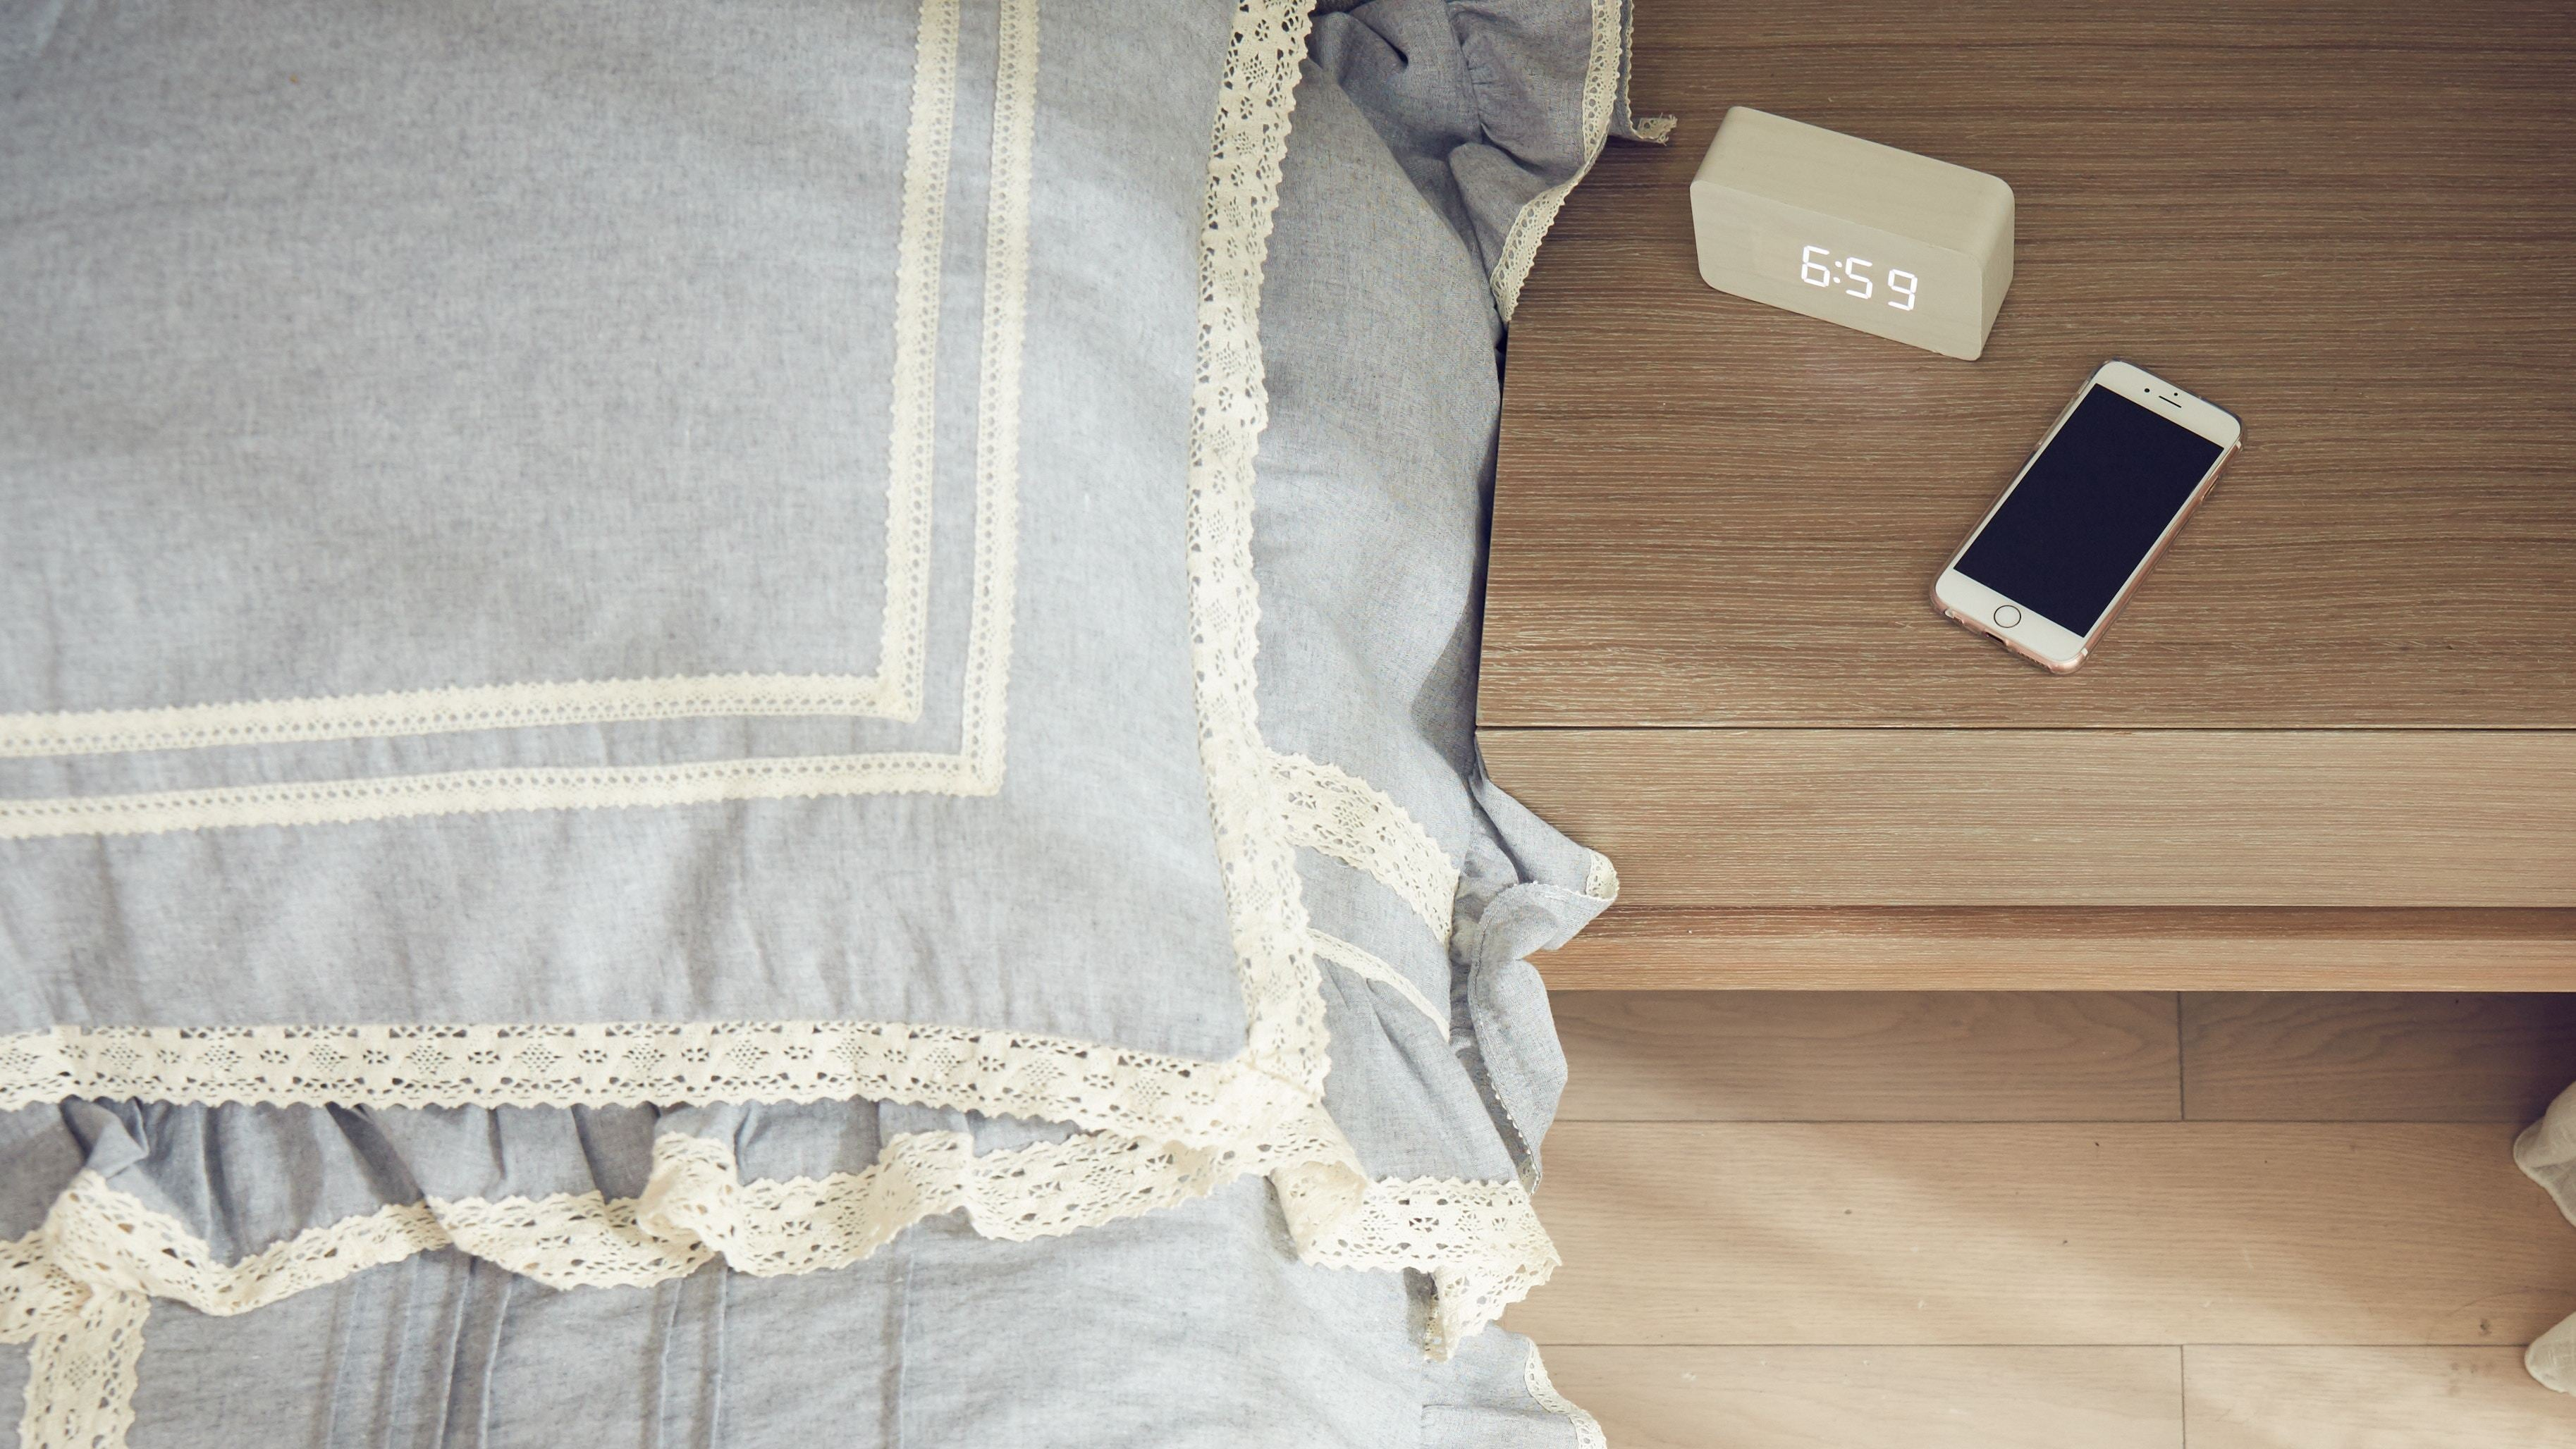 Get Help Waking Up With These Quirky Alarm Clock Apps